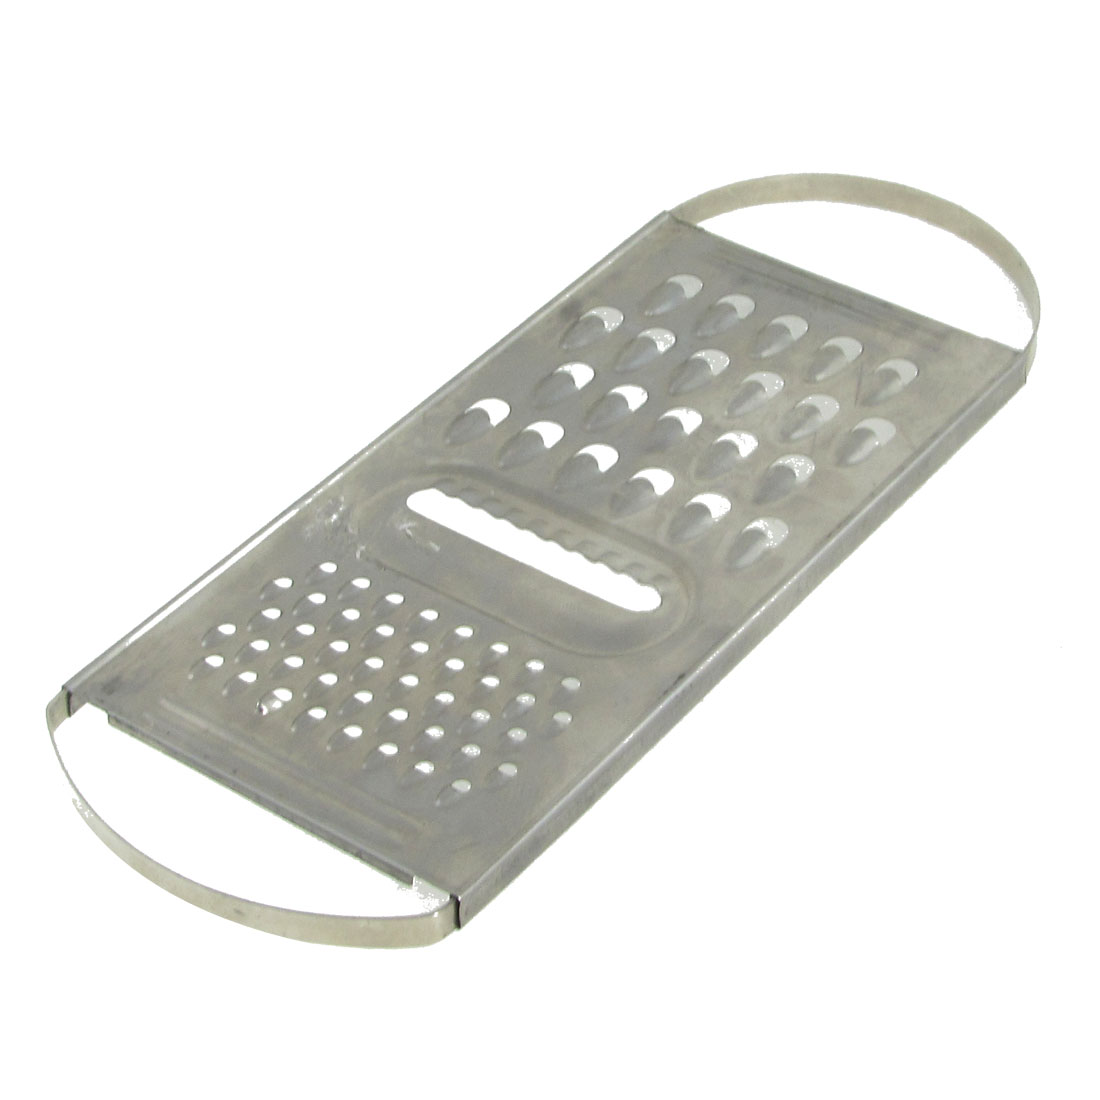 Vegetable Combo Metal Shreds Grater Kitchen Cutter Silver Tone